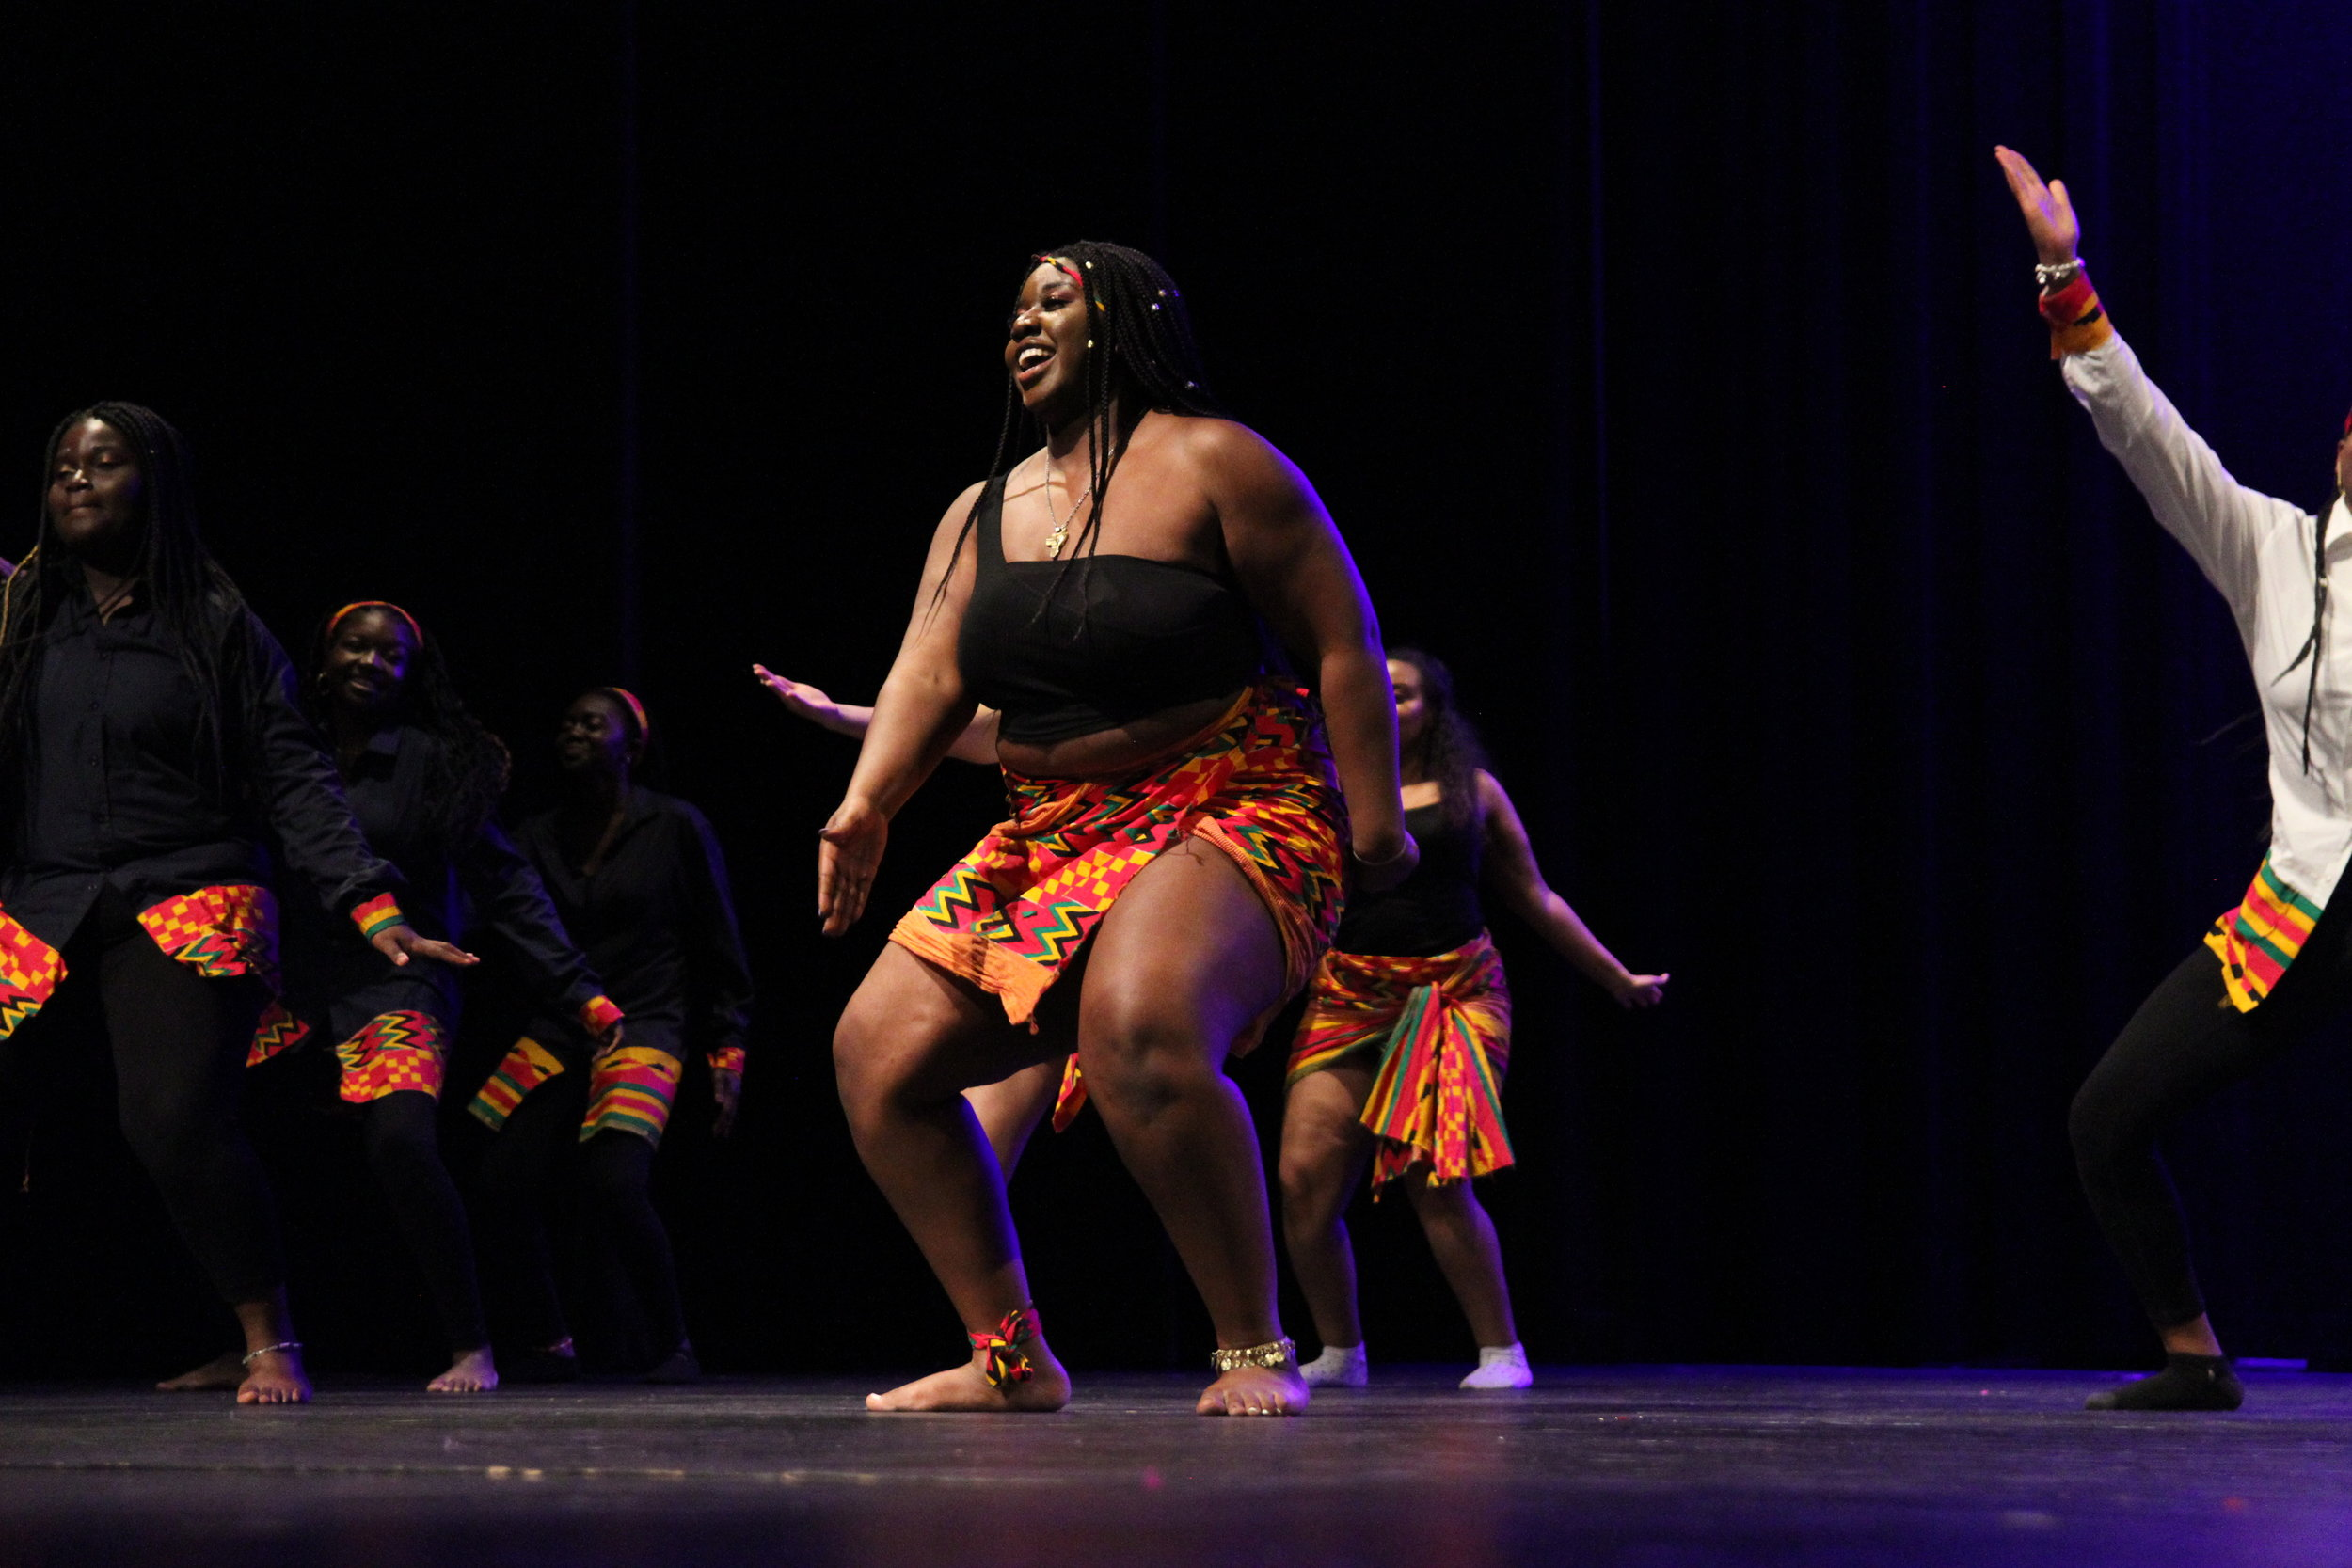 After a brief intermission, Uzuri wa Afrika, comes out on stage and Zainab Umardeen, Adv. 909